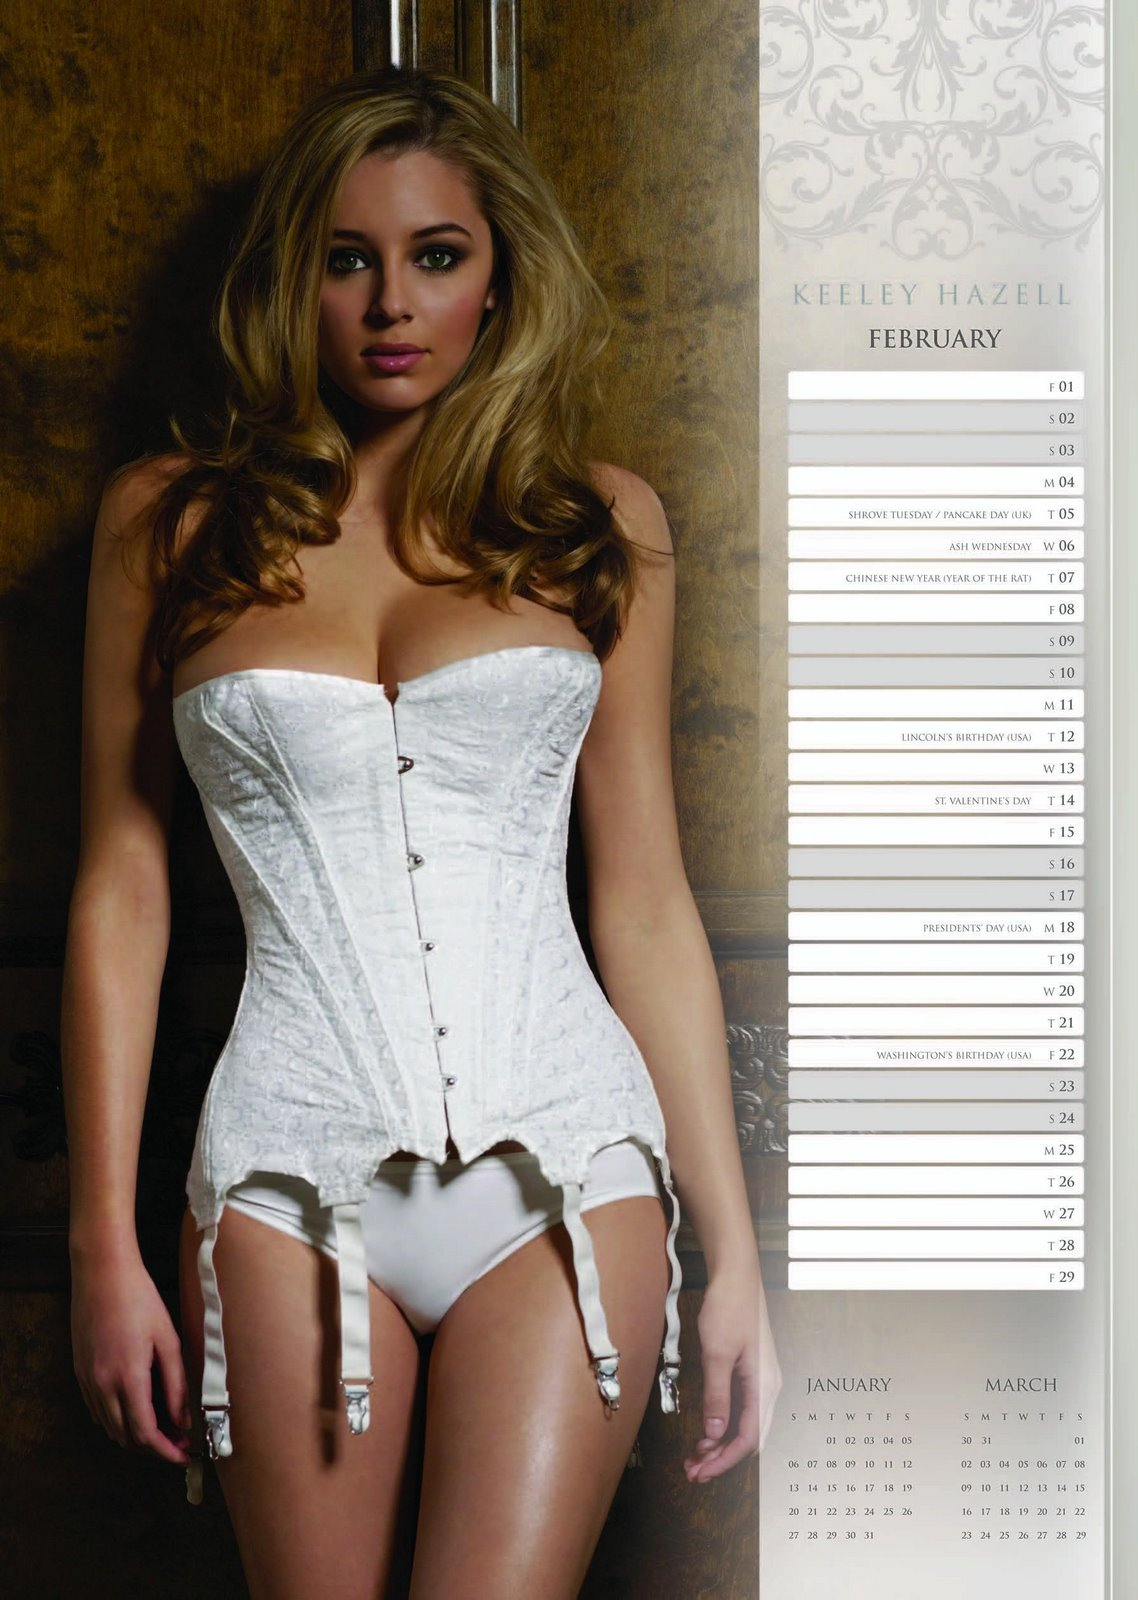 Download full size Official Calendar 2008 february Keeley Hazell wallpaper / 1138x1600